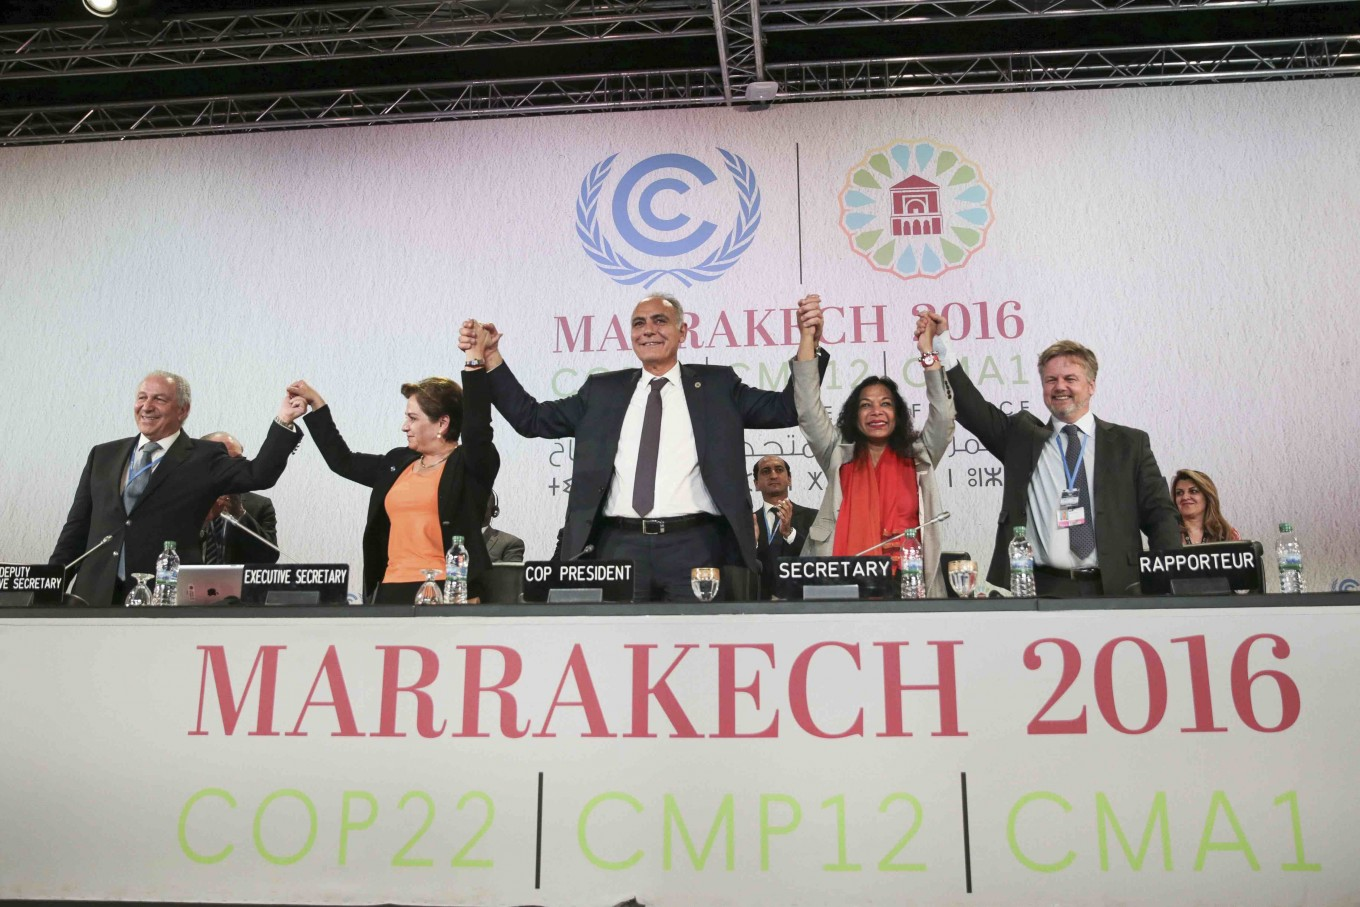 Indonesia to focus on bilateral talks post-Marrakech